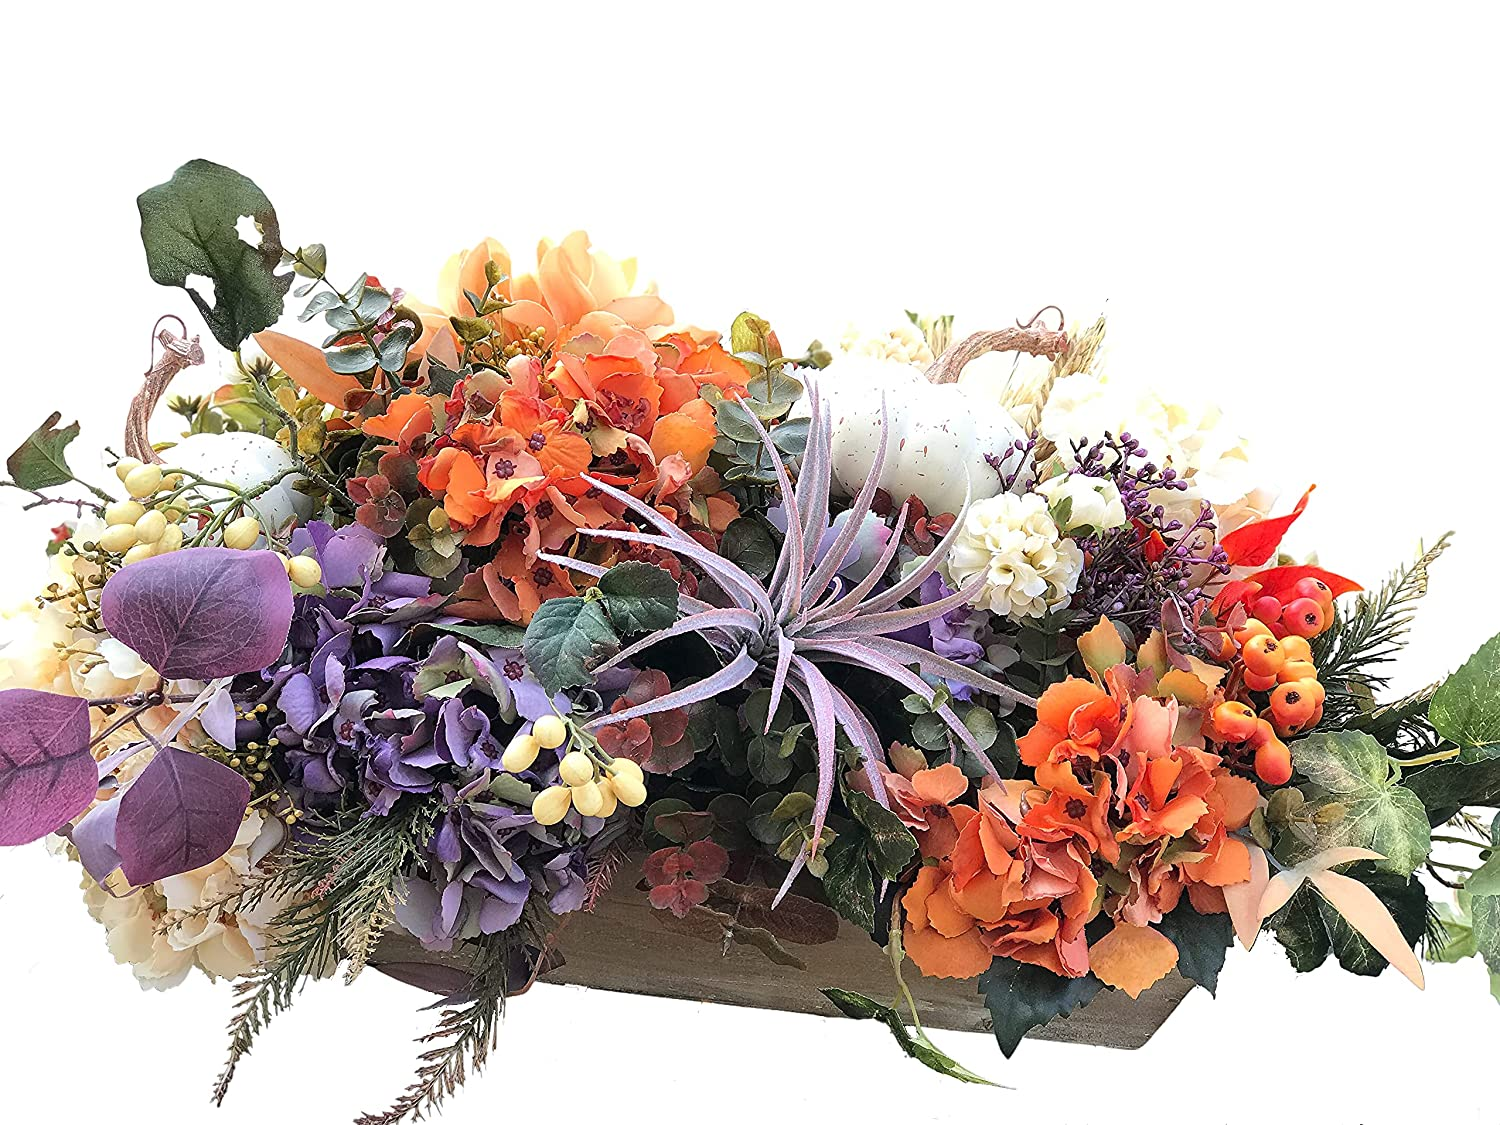 Hydrangea Autumn Floral Center Selling and selling Piece Max 72% OFF ce arrangement Fall Flower